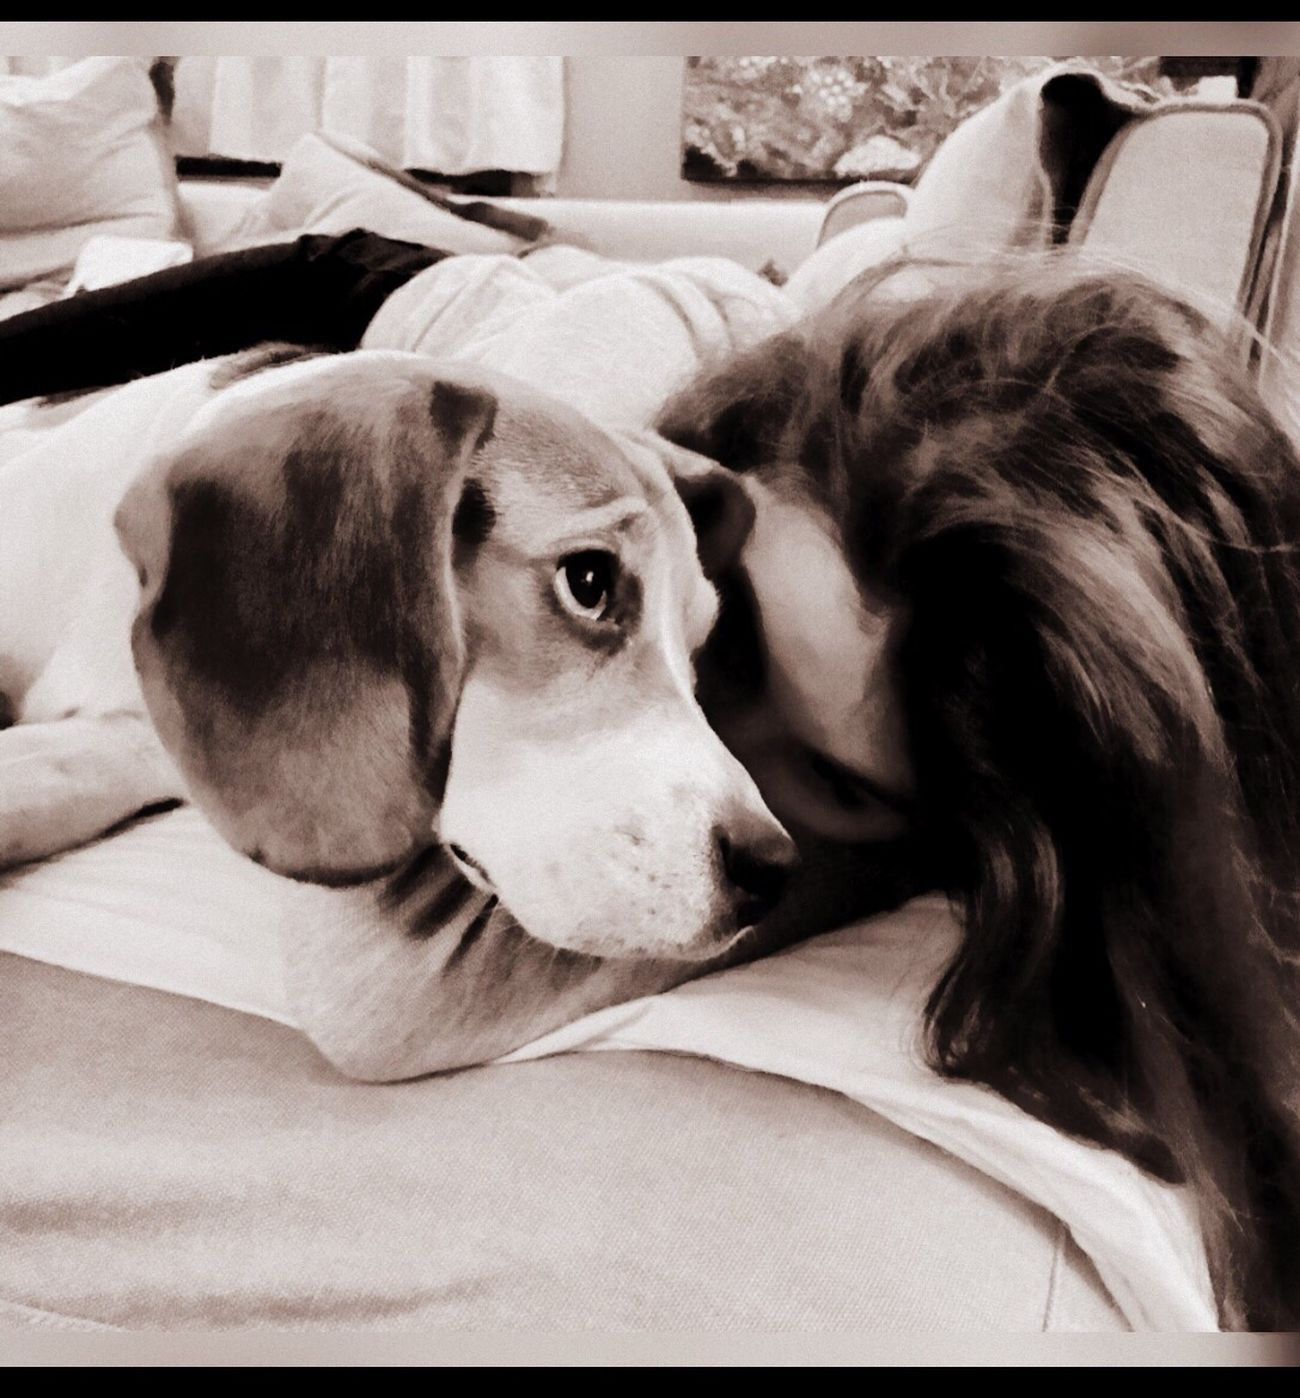 Pets Dog Looking At Camera One Animal Domestic Animals Animal Themes Portrait Mammal Lying Down Close-up Indoors  Day Beagle Beagles  Beaglelovers Beagleoftheday Beaglelove Beagle Love Beaglelife Dogs Dogslife Dog Love Cute Pets Love